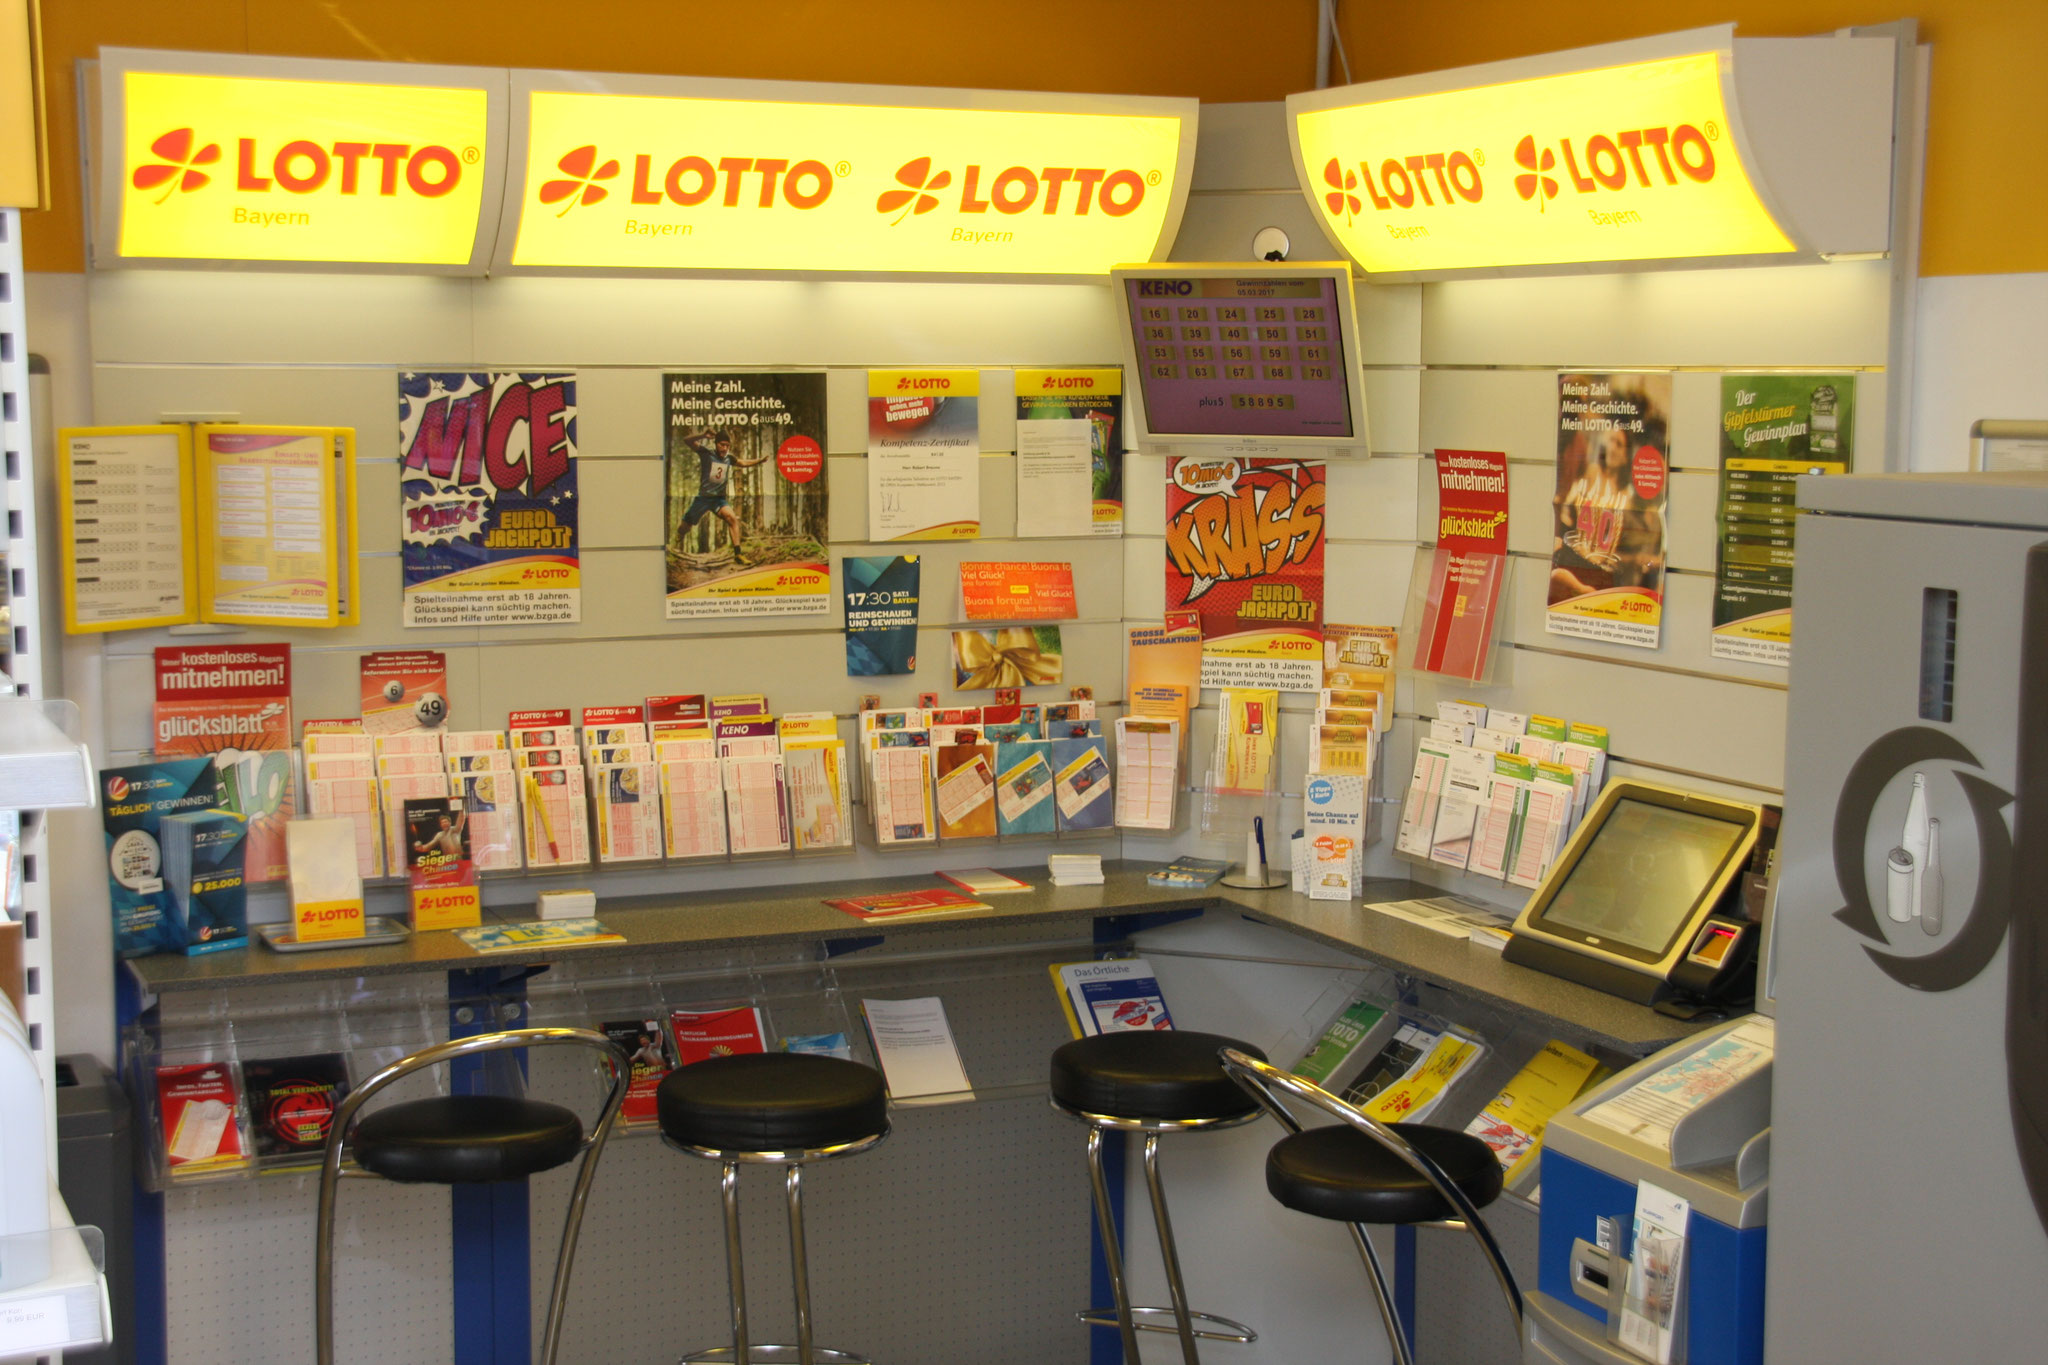 Lotto-Ecke